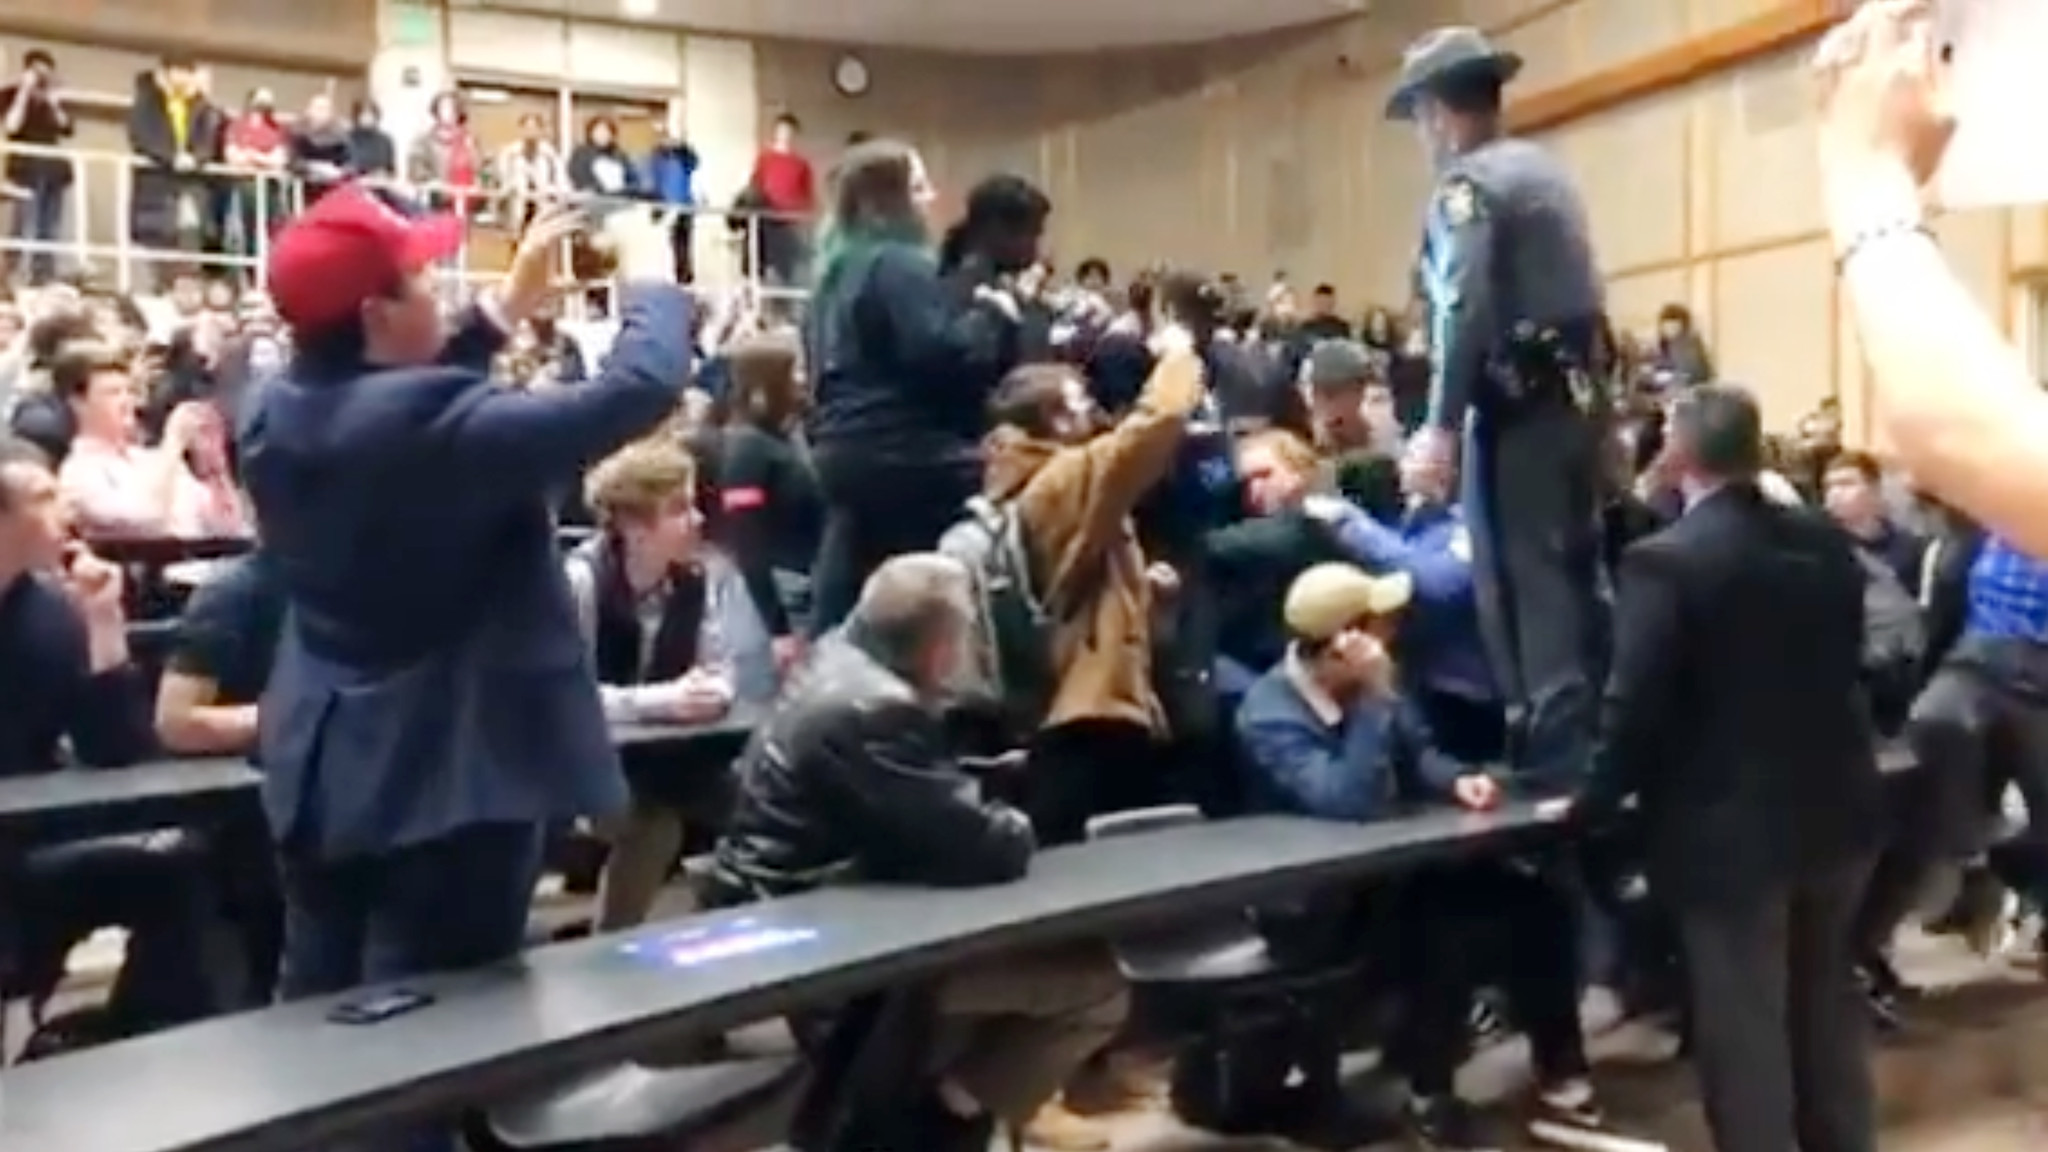 Freedom 101: Slowly but surely, New York universities are learning how to deal with students who disrupt speech